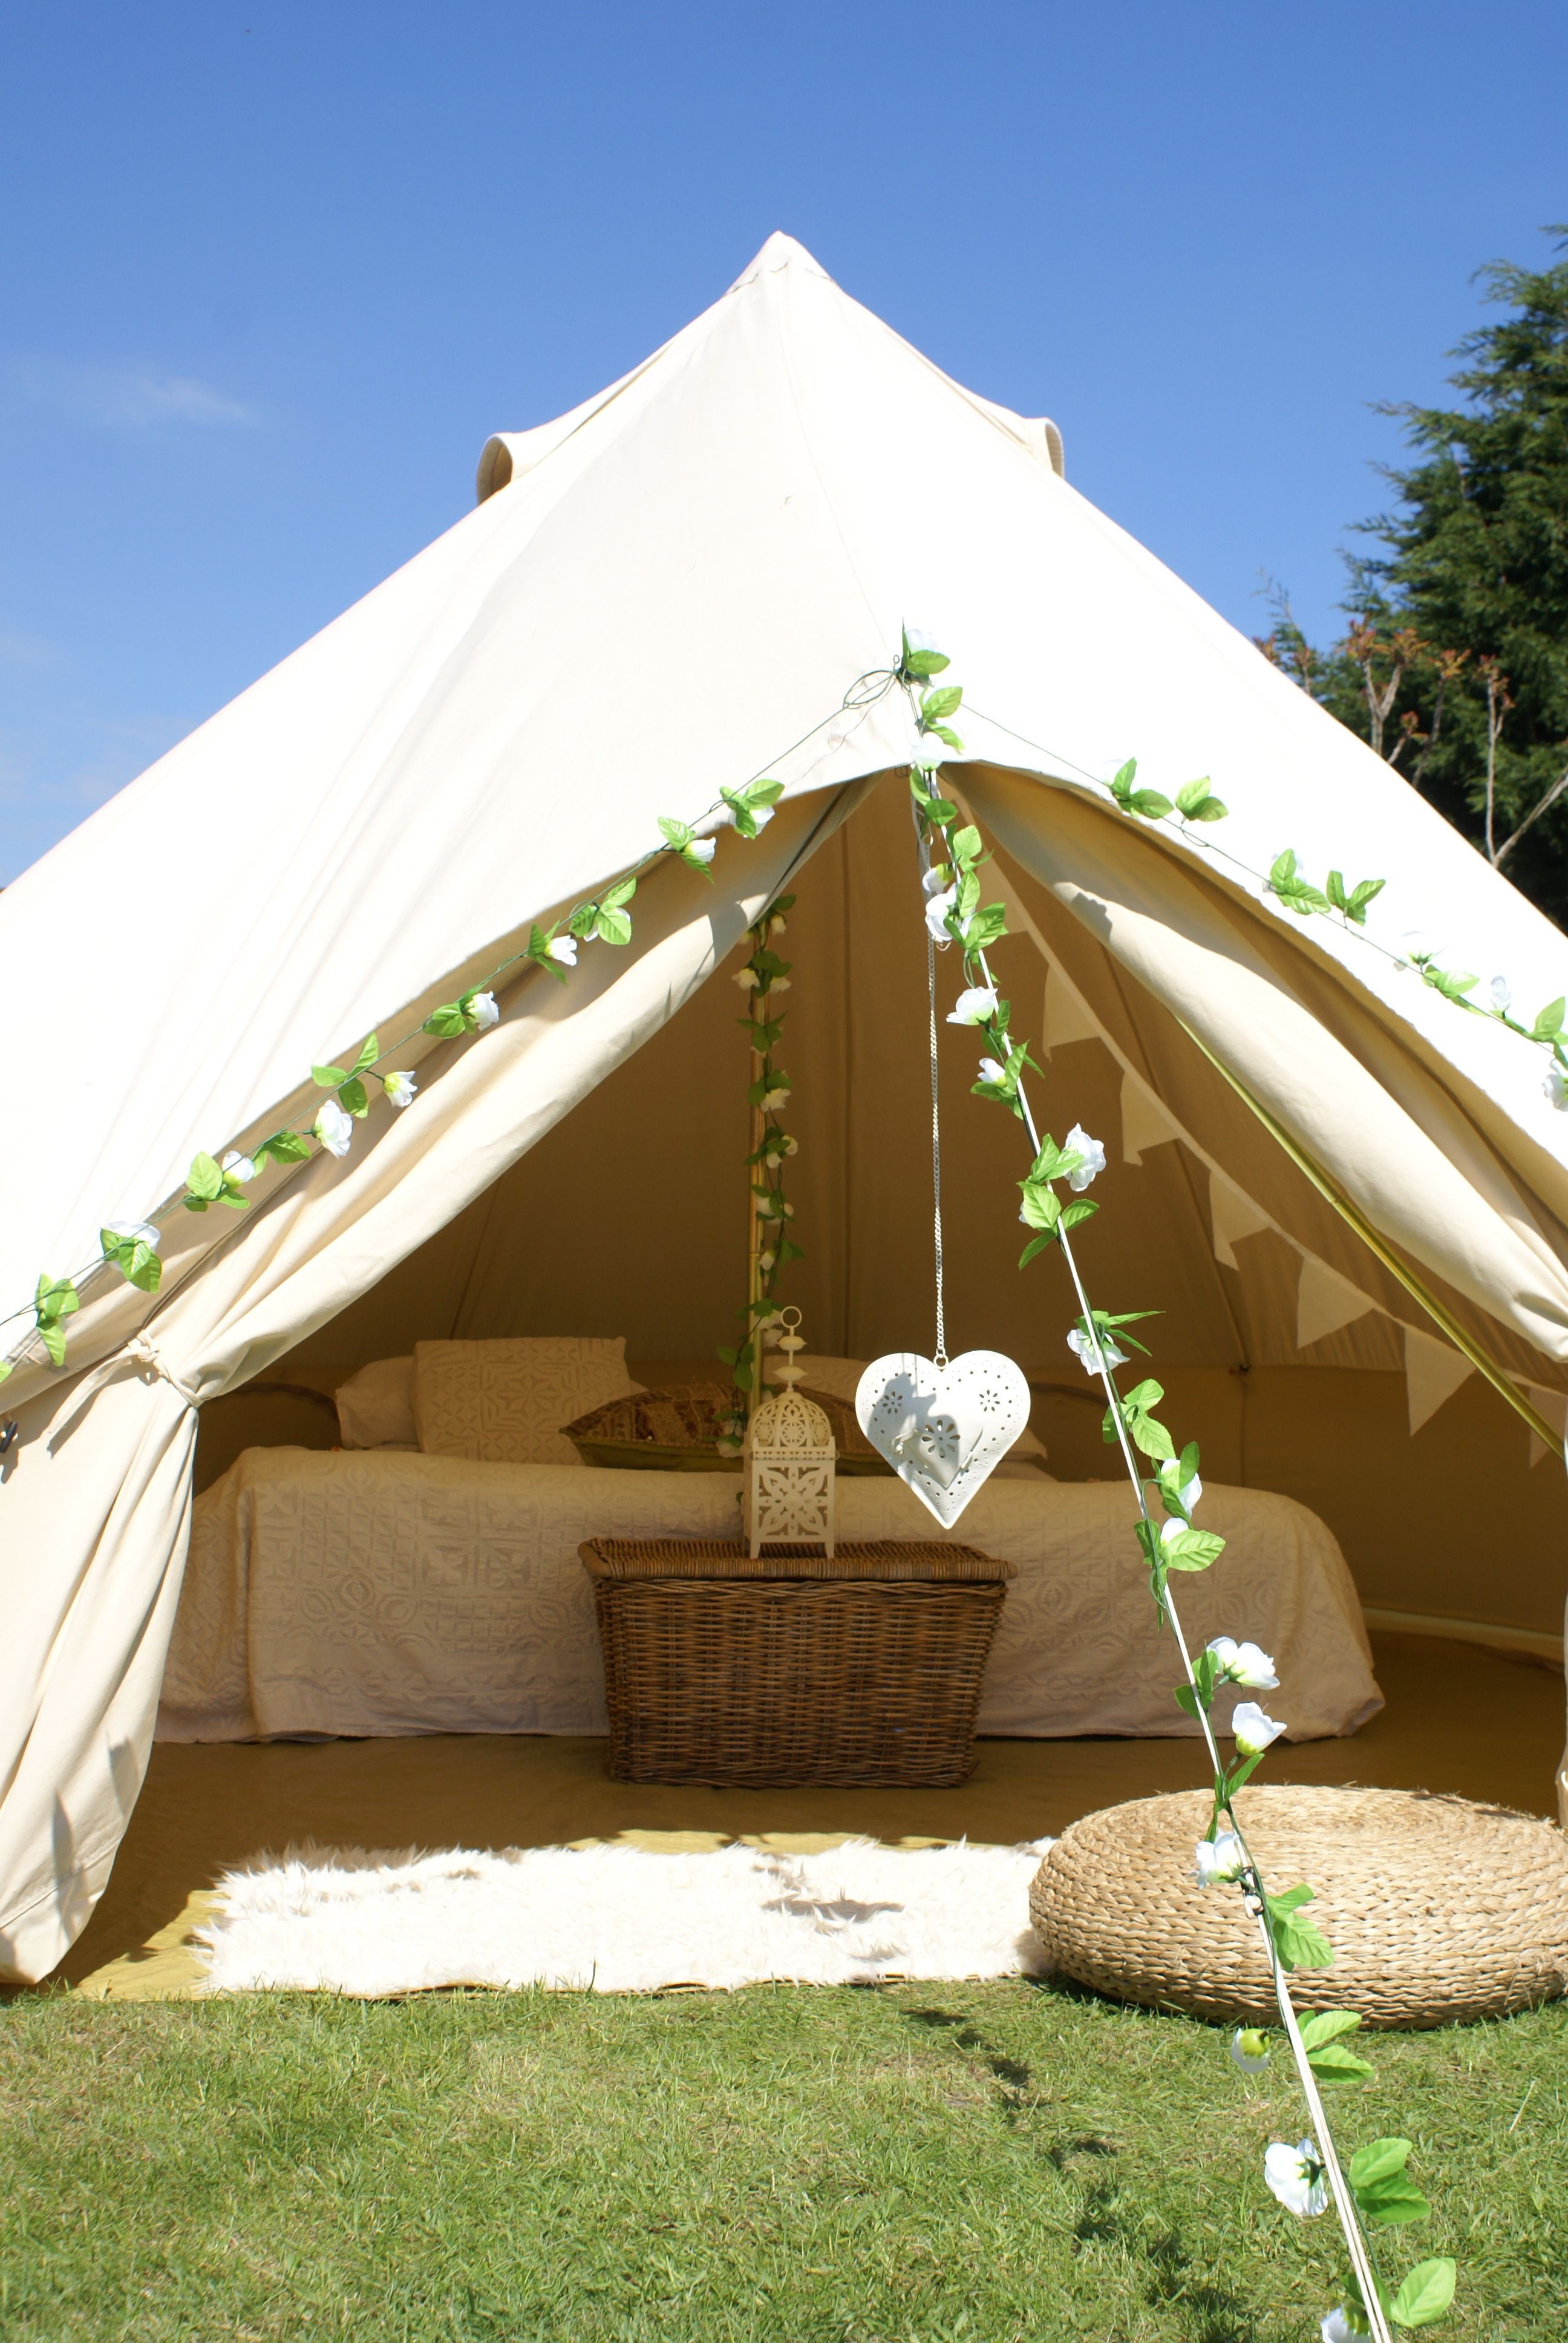 Glamping Tipi and Bell Tent Camping